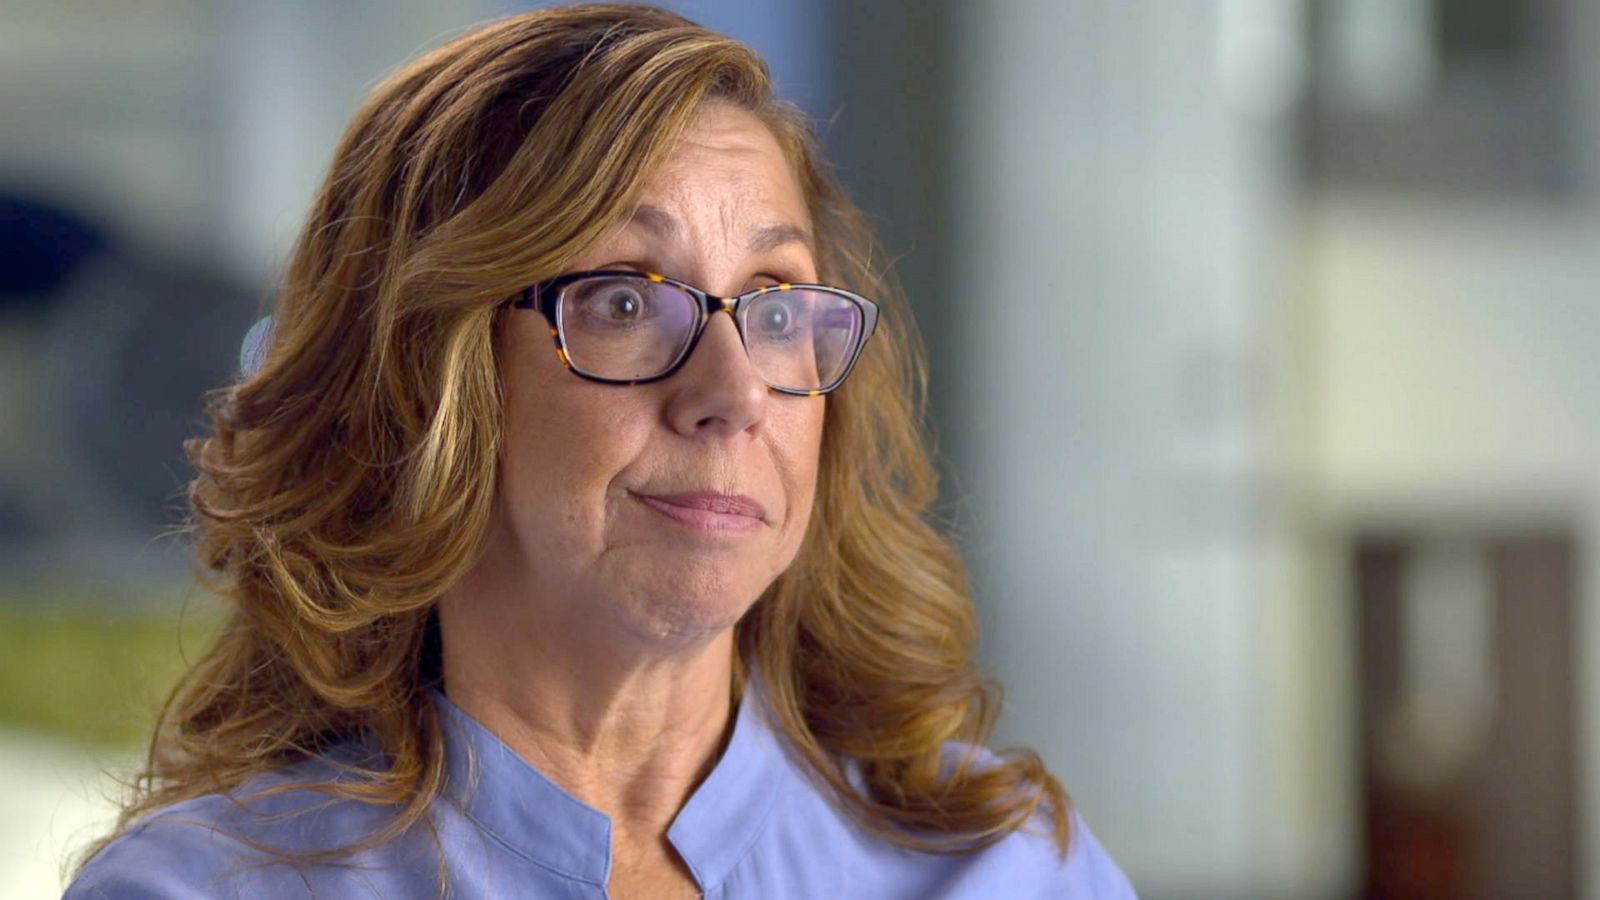 Chi Omega survivor of Ted Bundy murders: 'I was asleep' when